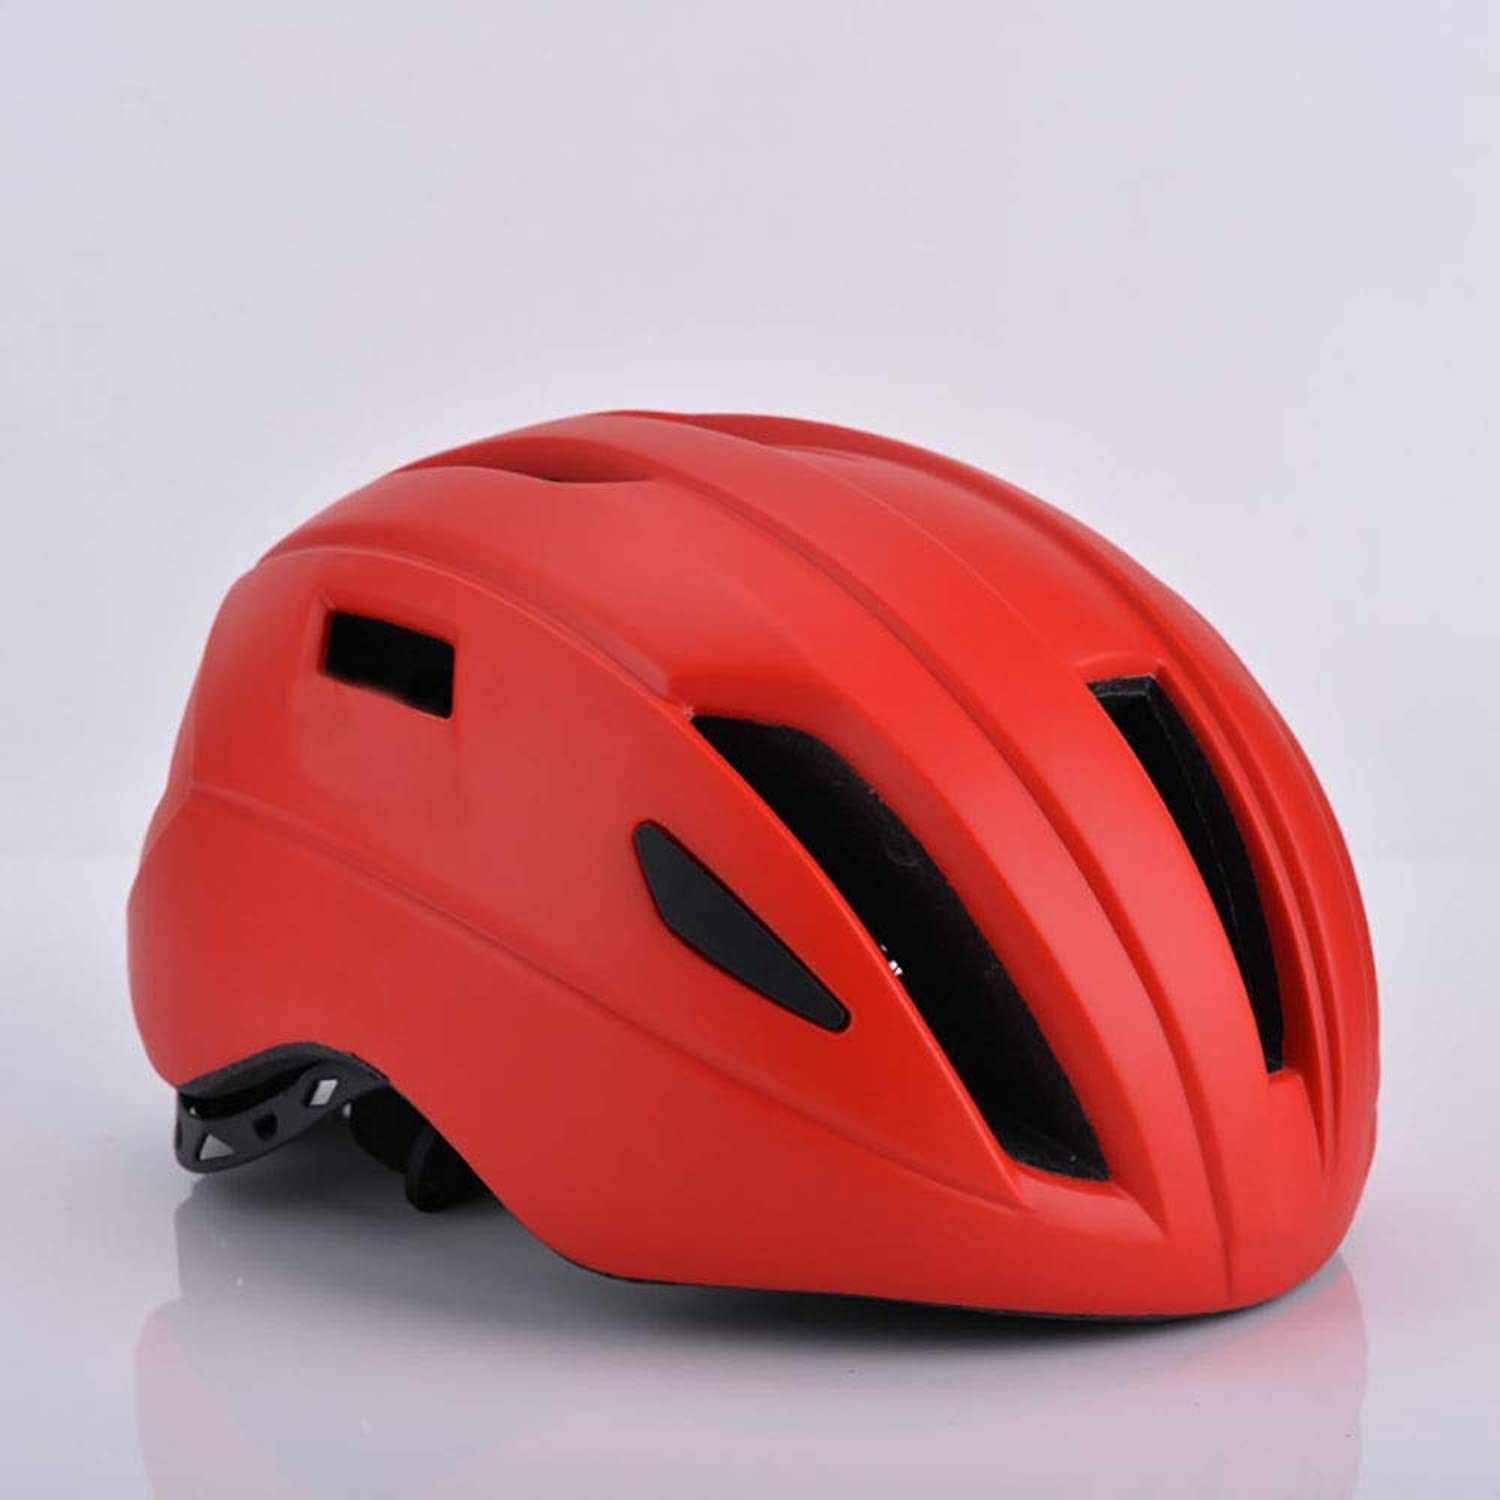 Lanbinxiang@ New Bicycle Safety Helmet Bicycle Mountain Bike Off-Road Vehicle Road Head Cycling Helmet Sports Equipment Predection